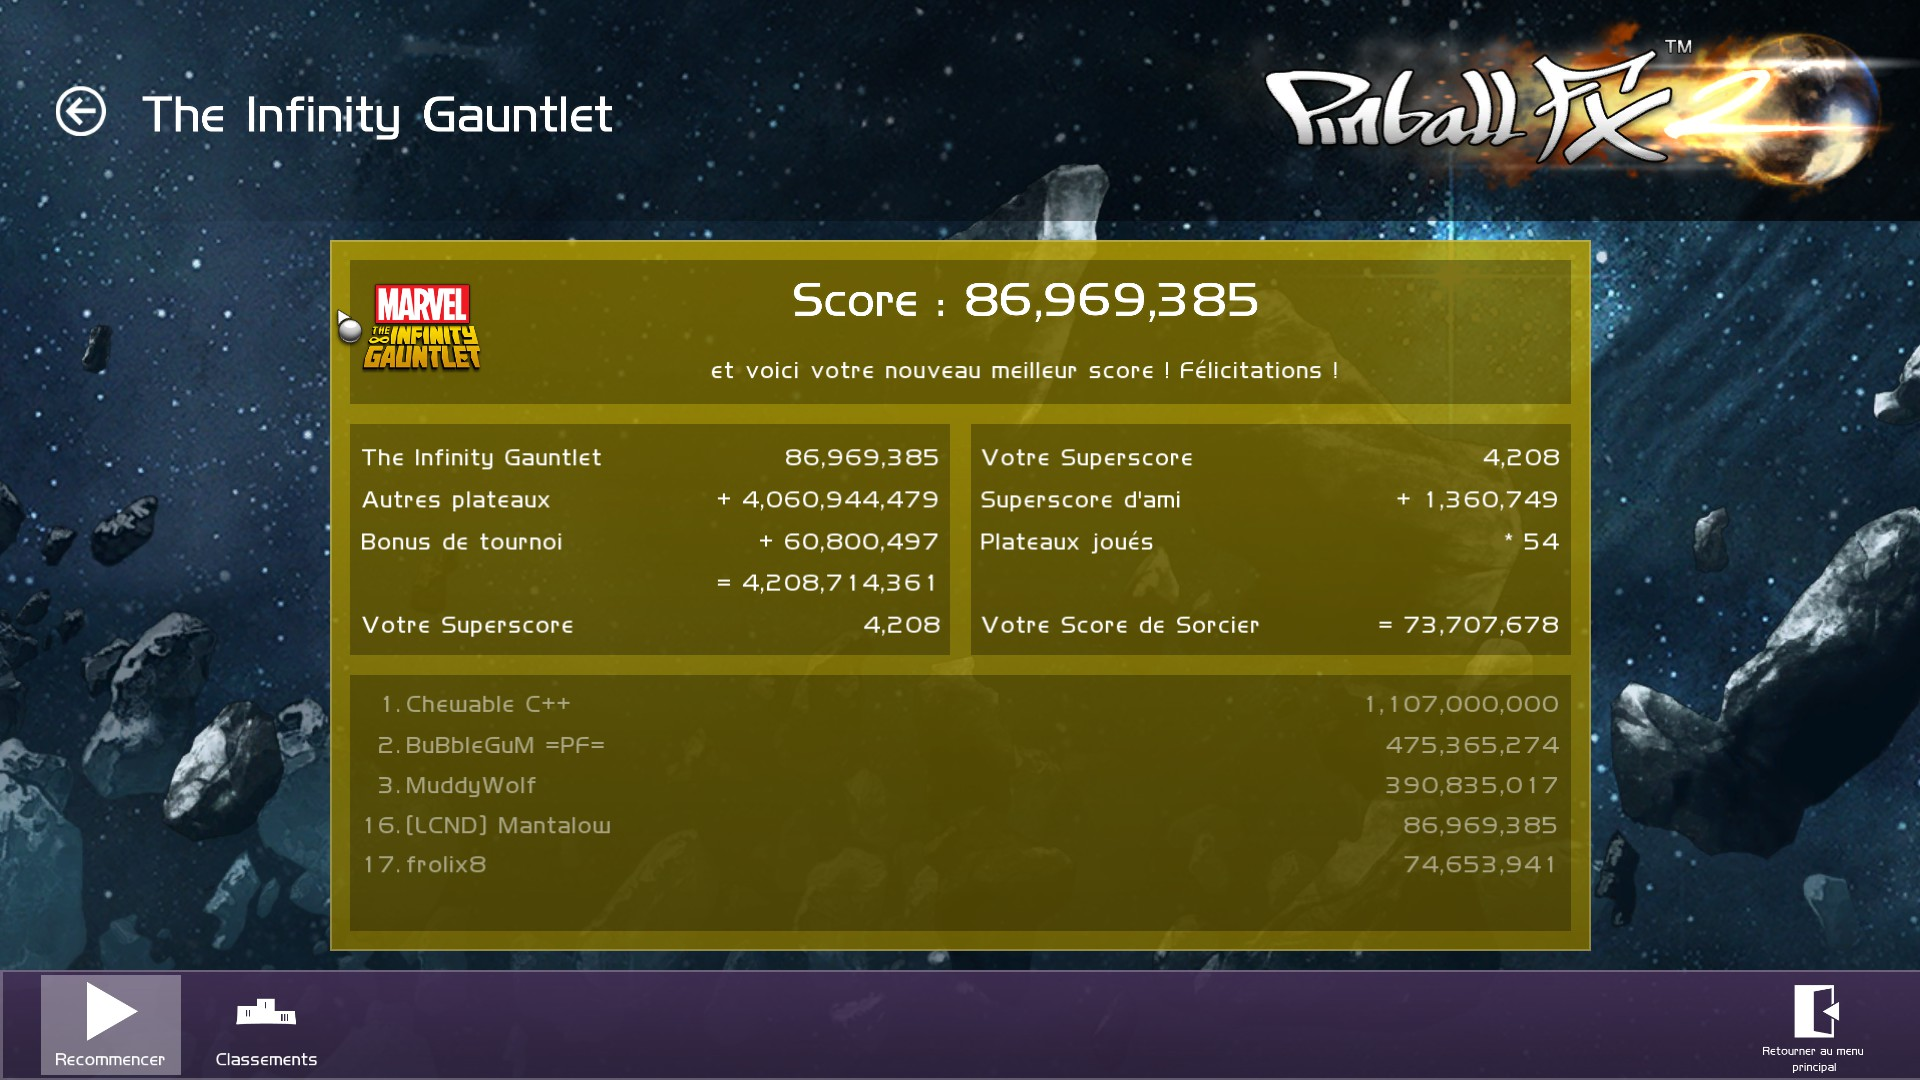 Mantalow: Pinball FX 2: Infinity Gauntlet (PC) 86,969,385 points on 2015-07-22 04:43:31